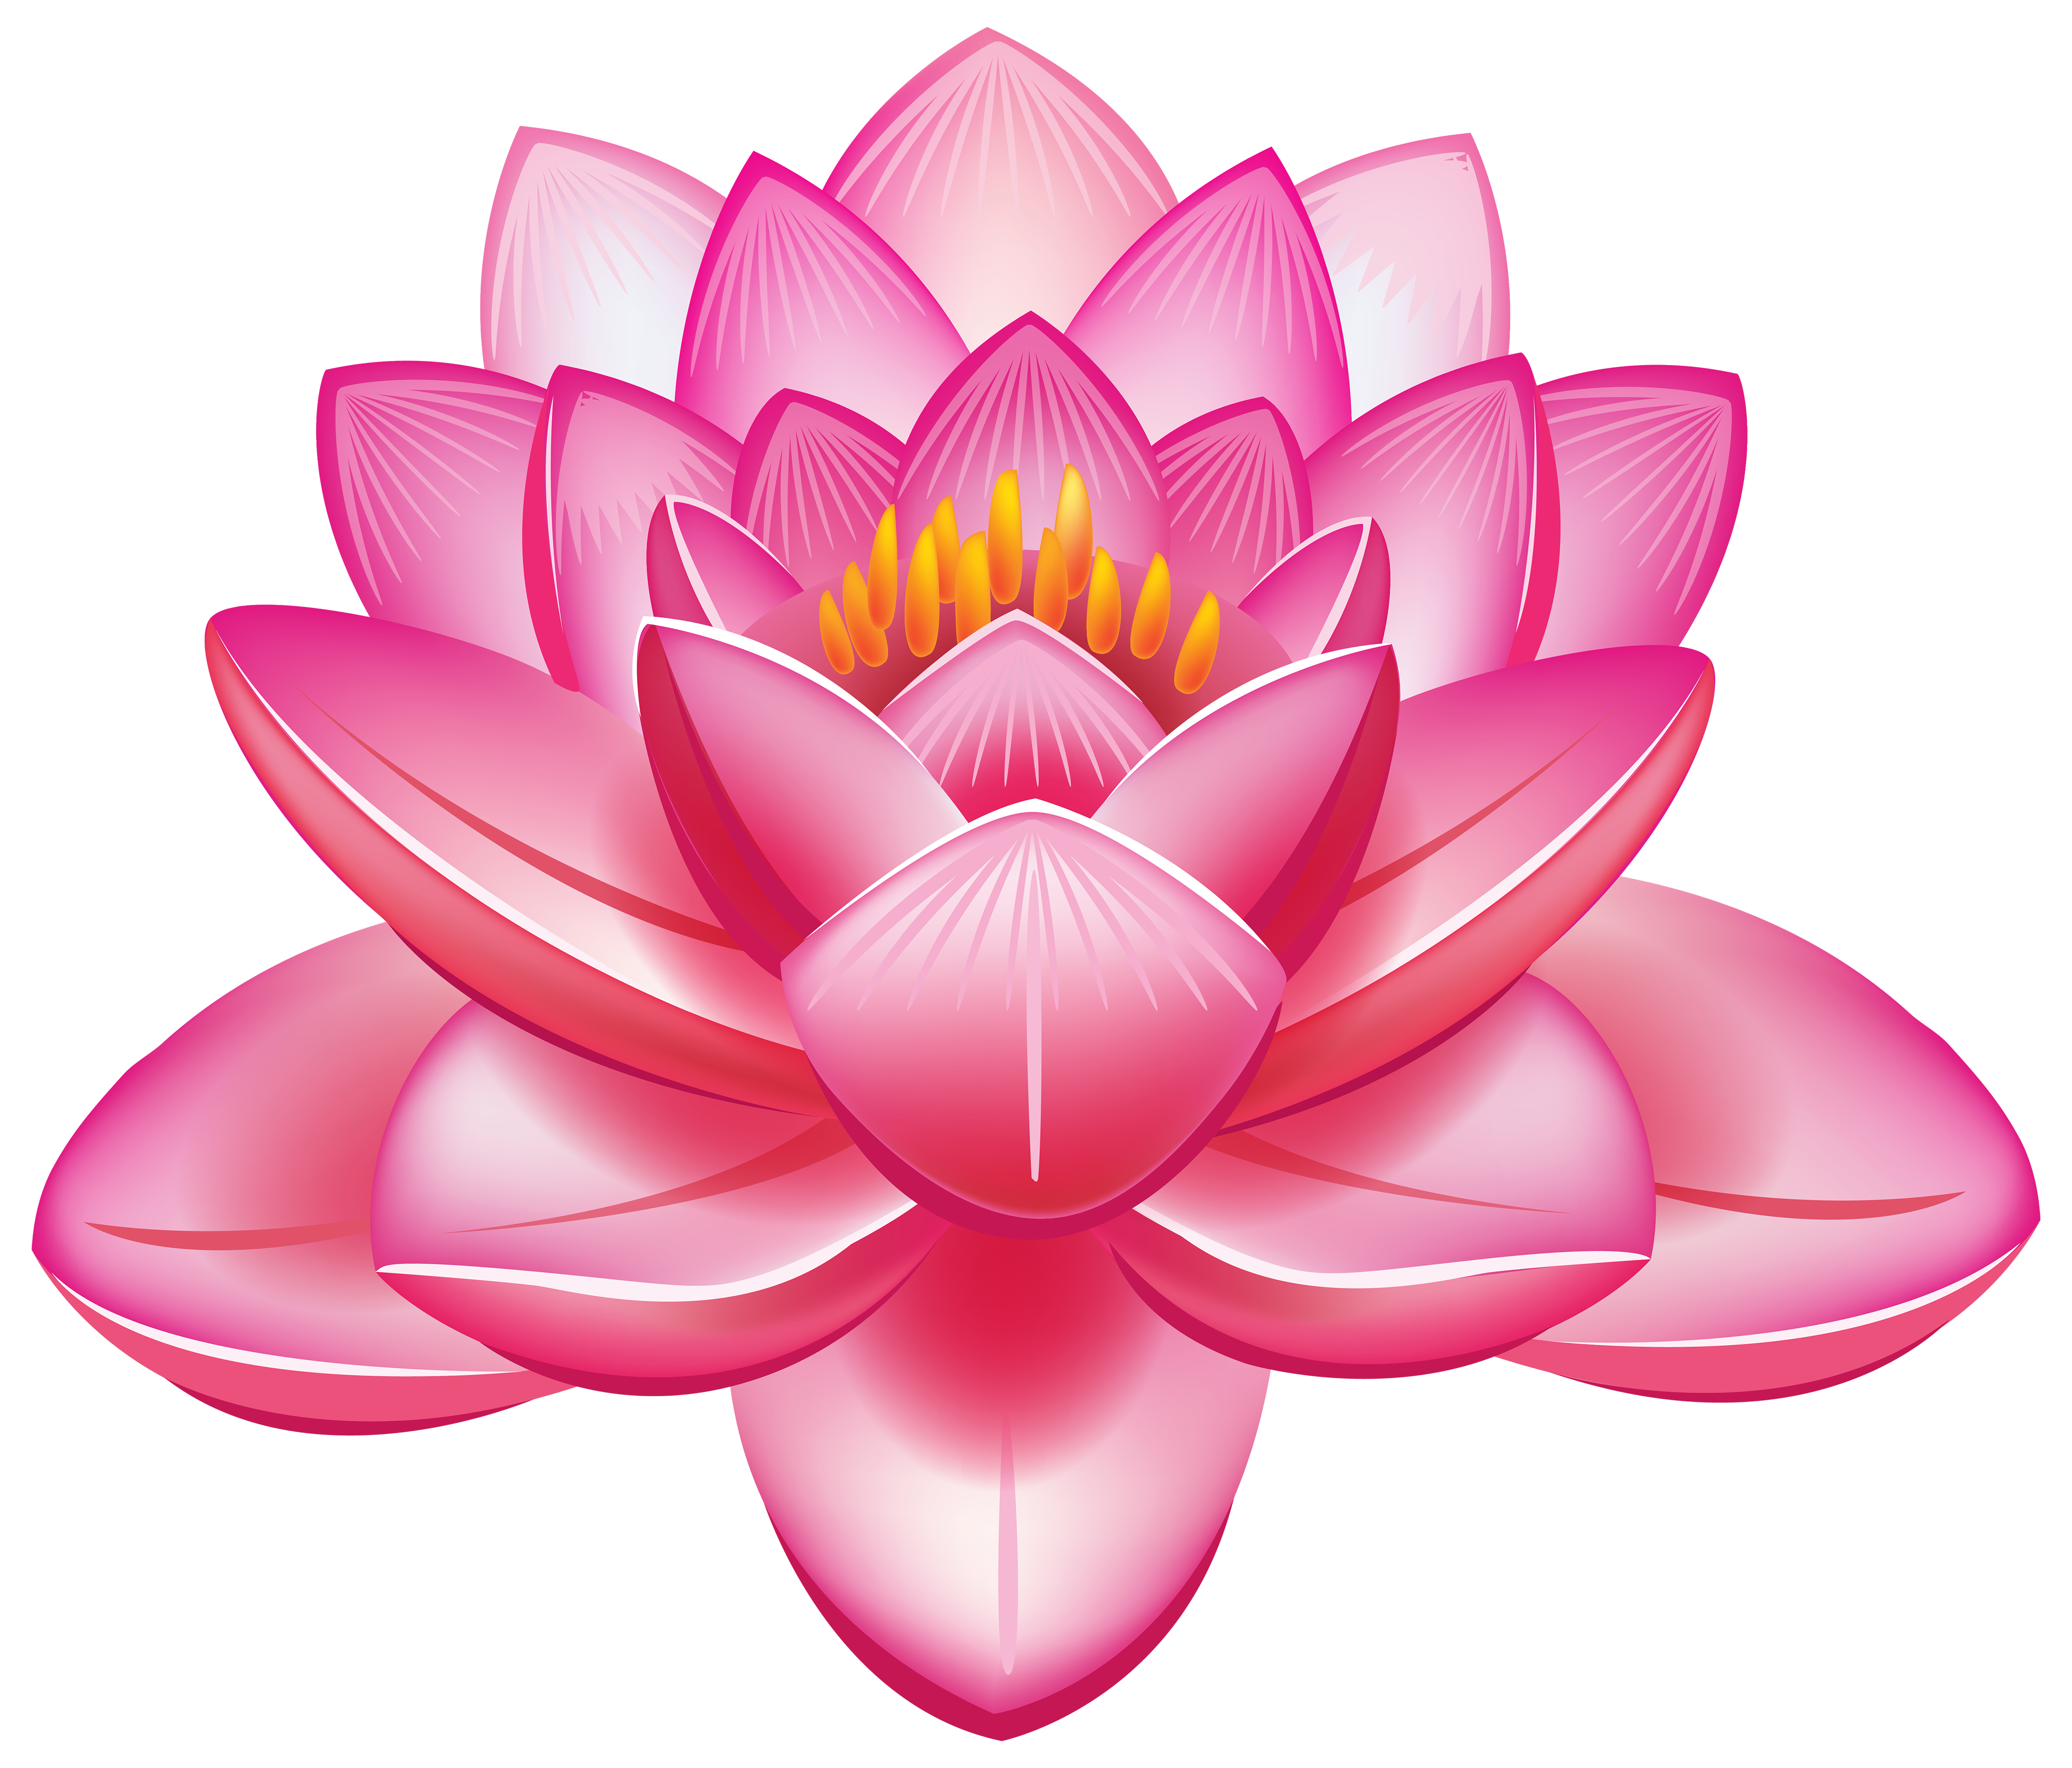 Lotus flower vector png. Clipart flowers best web